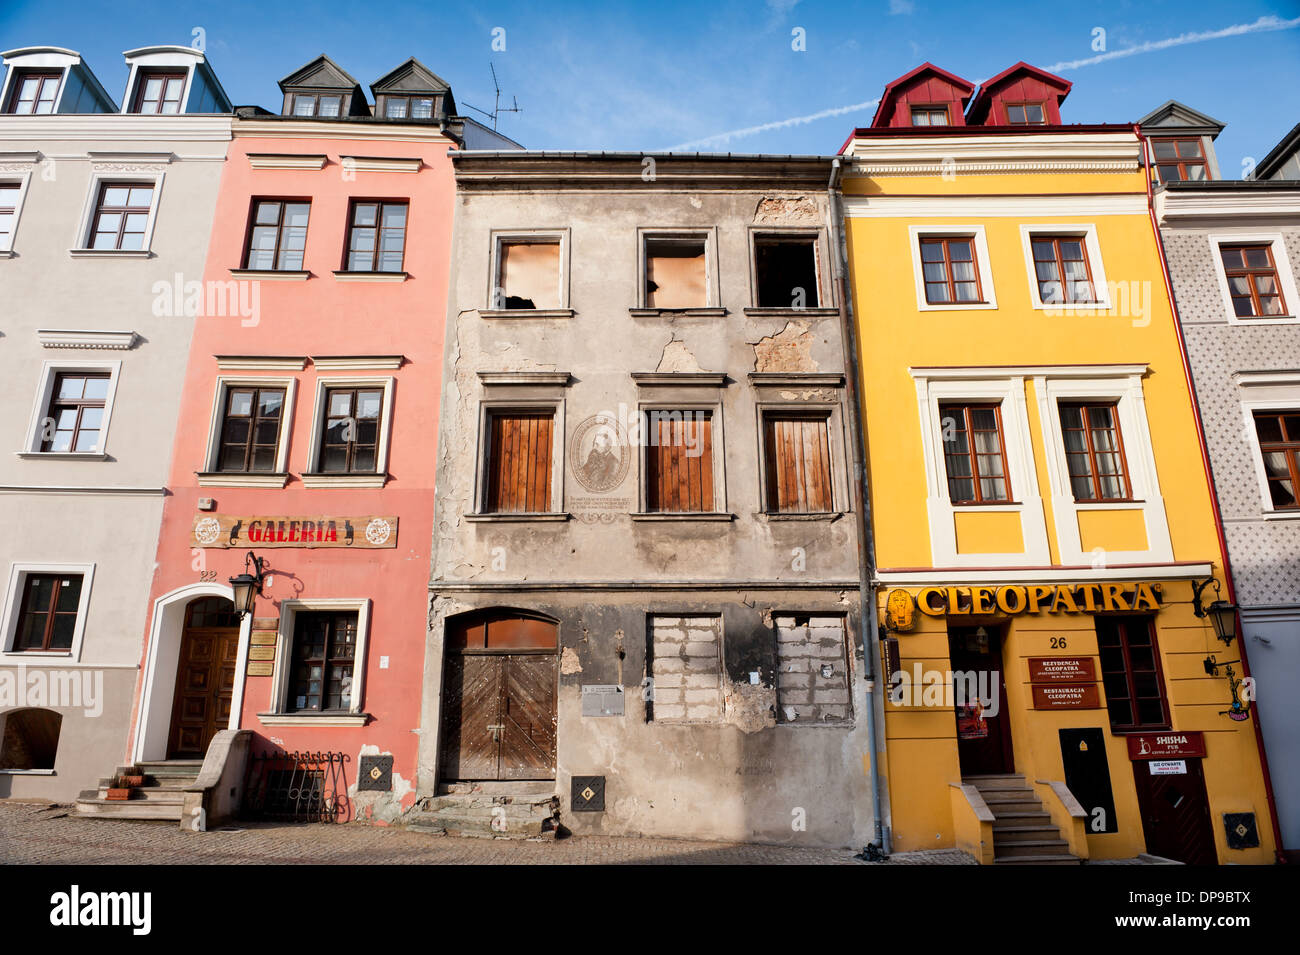 Ignacy Kraszewski Old House In Lublin Stock Photo Royalty Free Image 65360426 Alamy